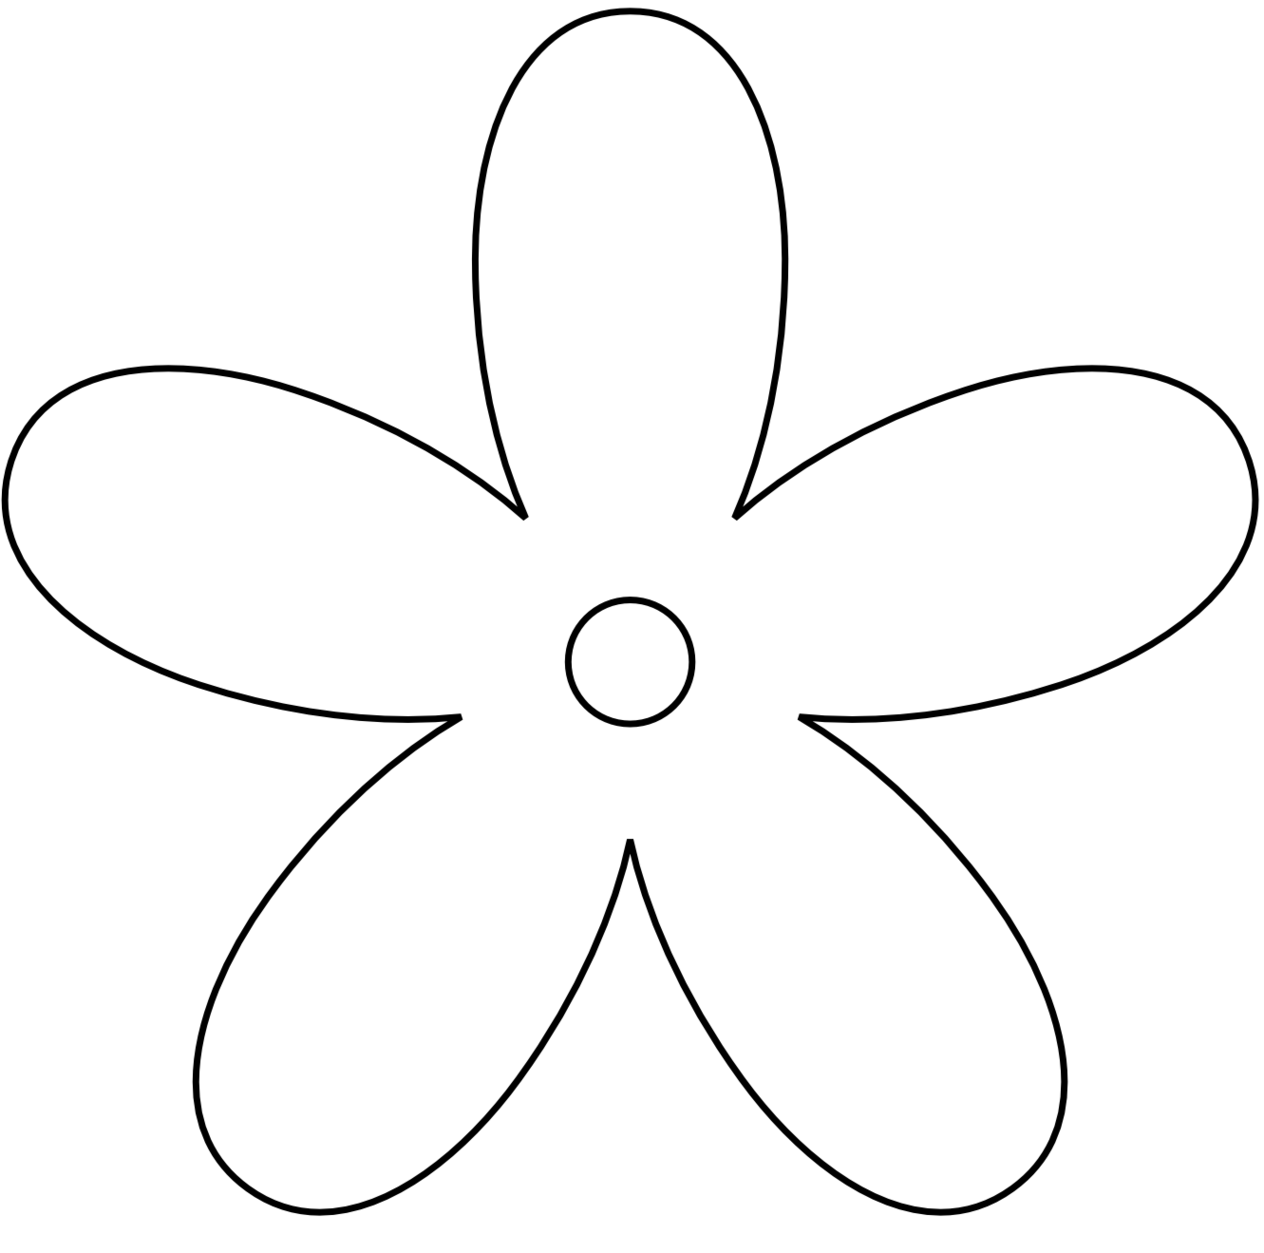 Clipart Black And White Flower - Clipart-Clipart black and white flower - ClipartFox-5